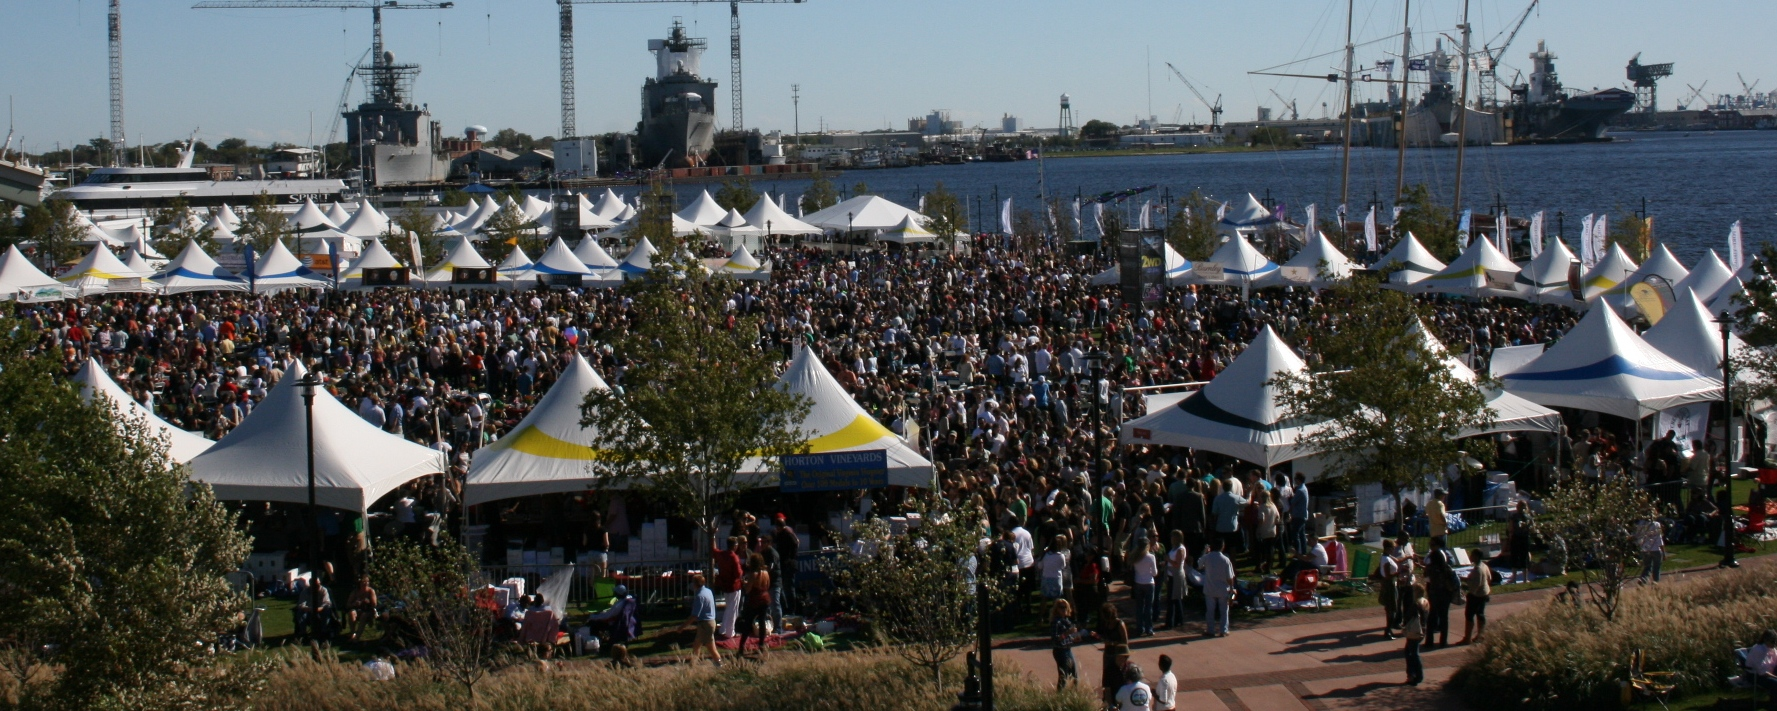 Annual Town Point Wine Festival Presented by AT&T